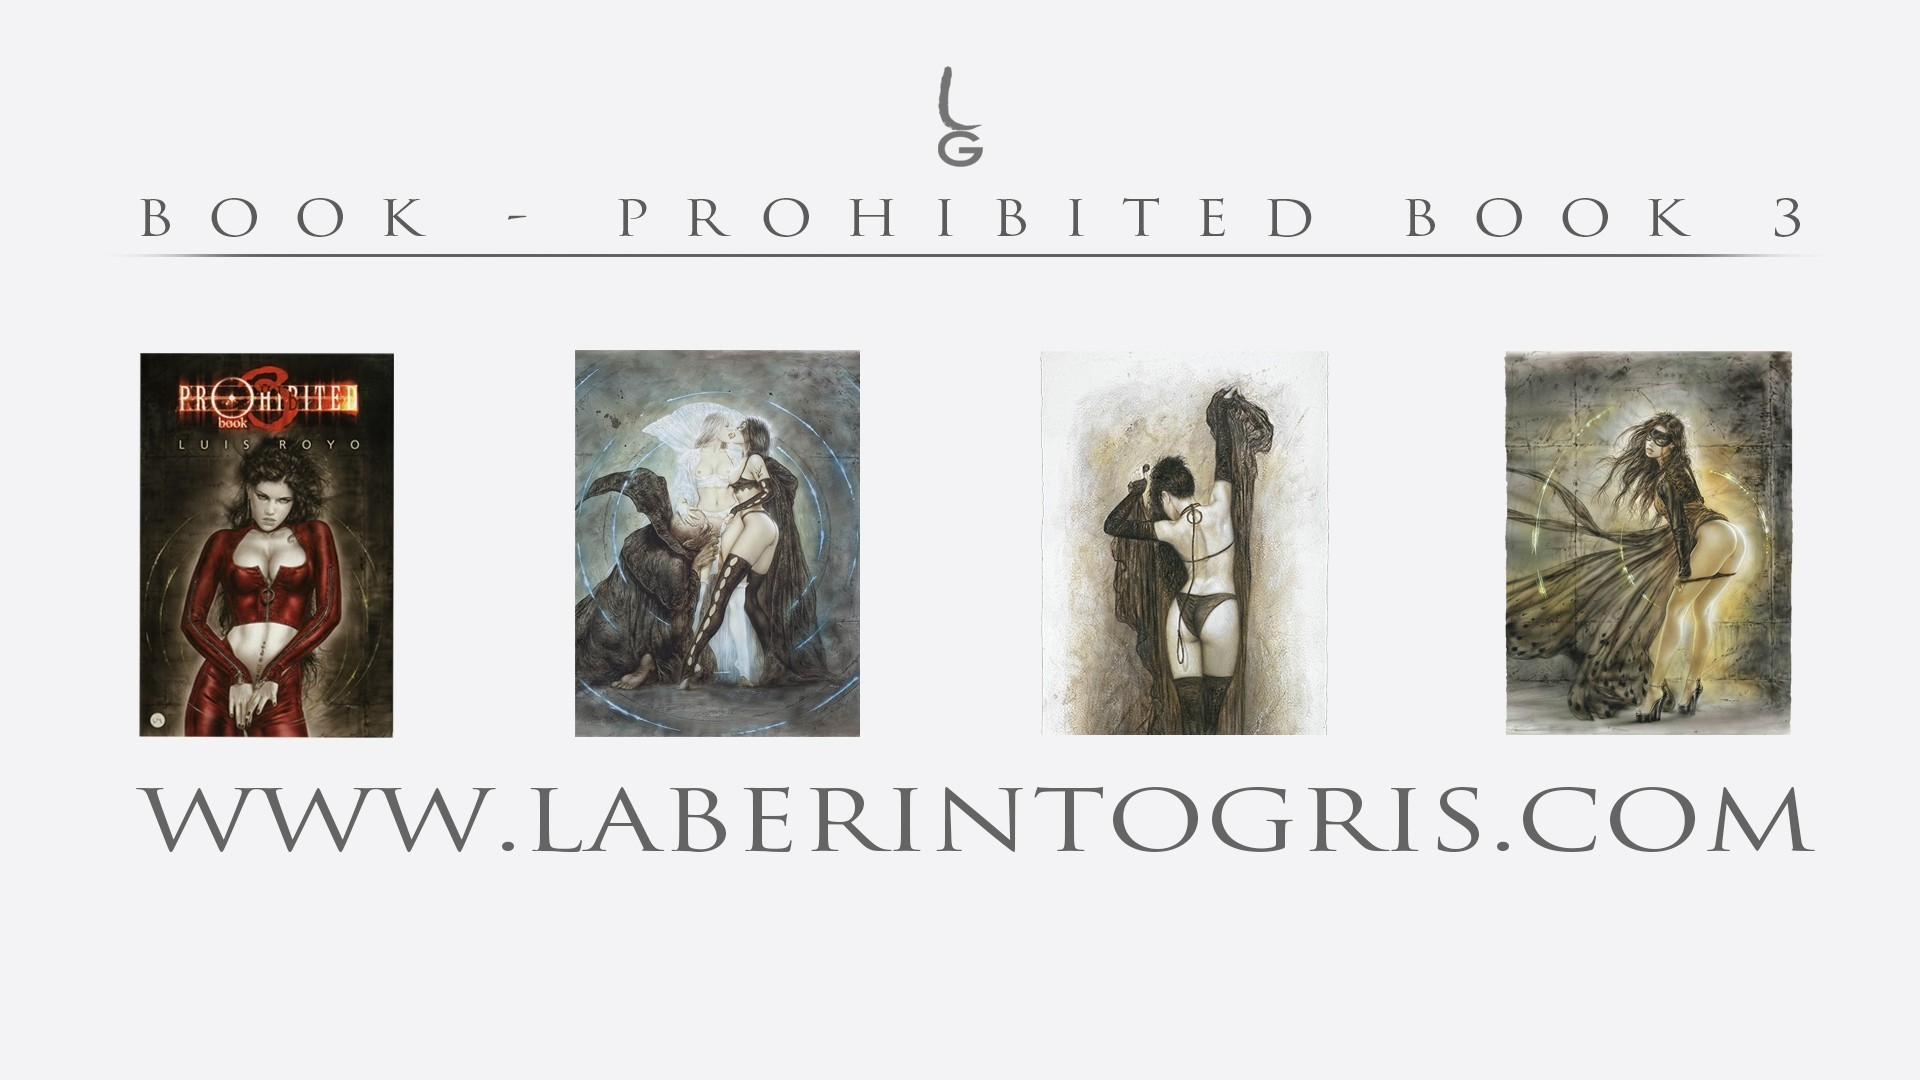 Prohibited book III